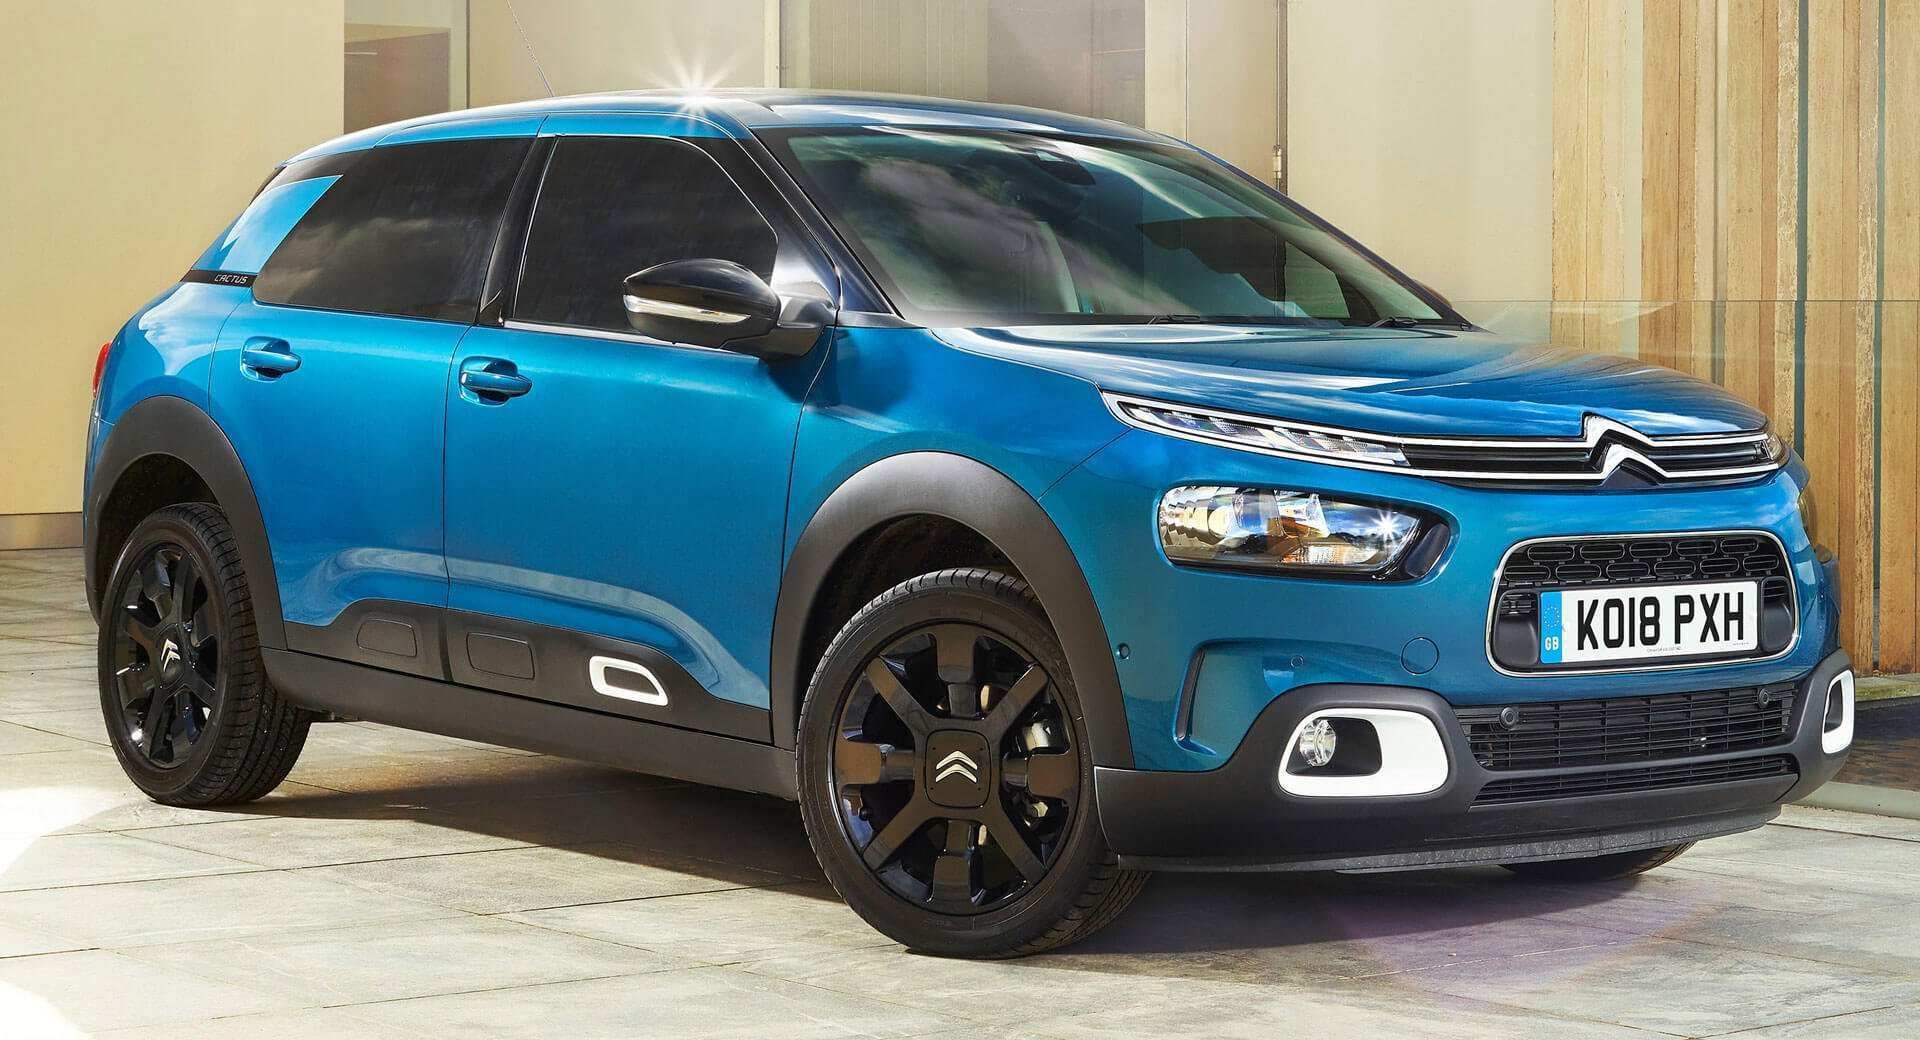 23 New 2020 New Citroen C4 Price And Review